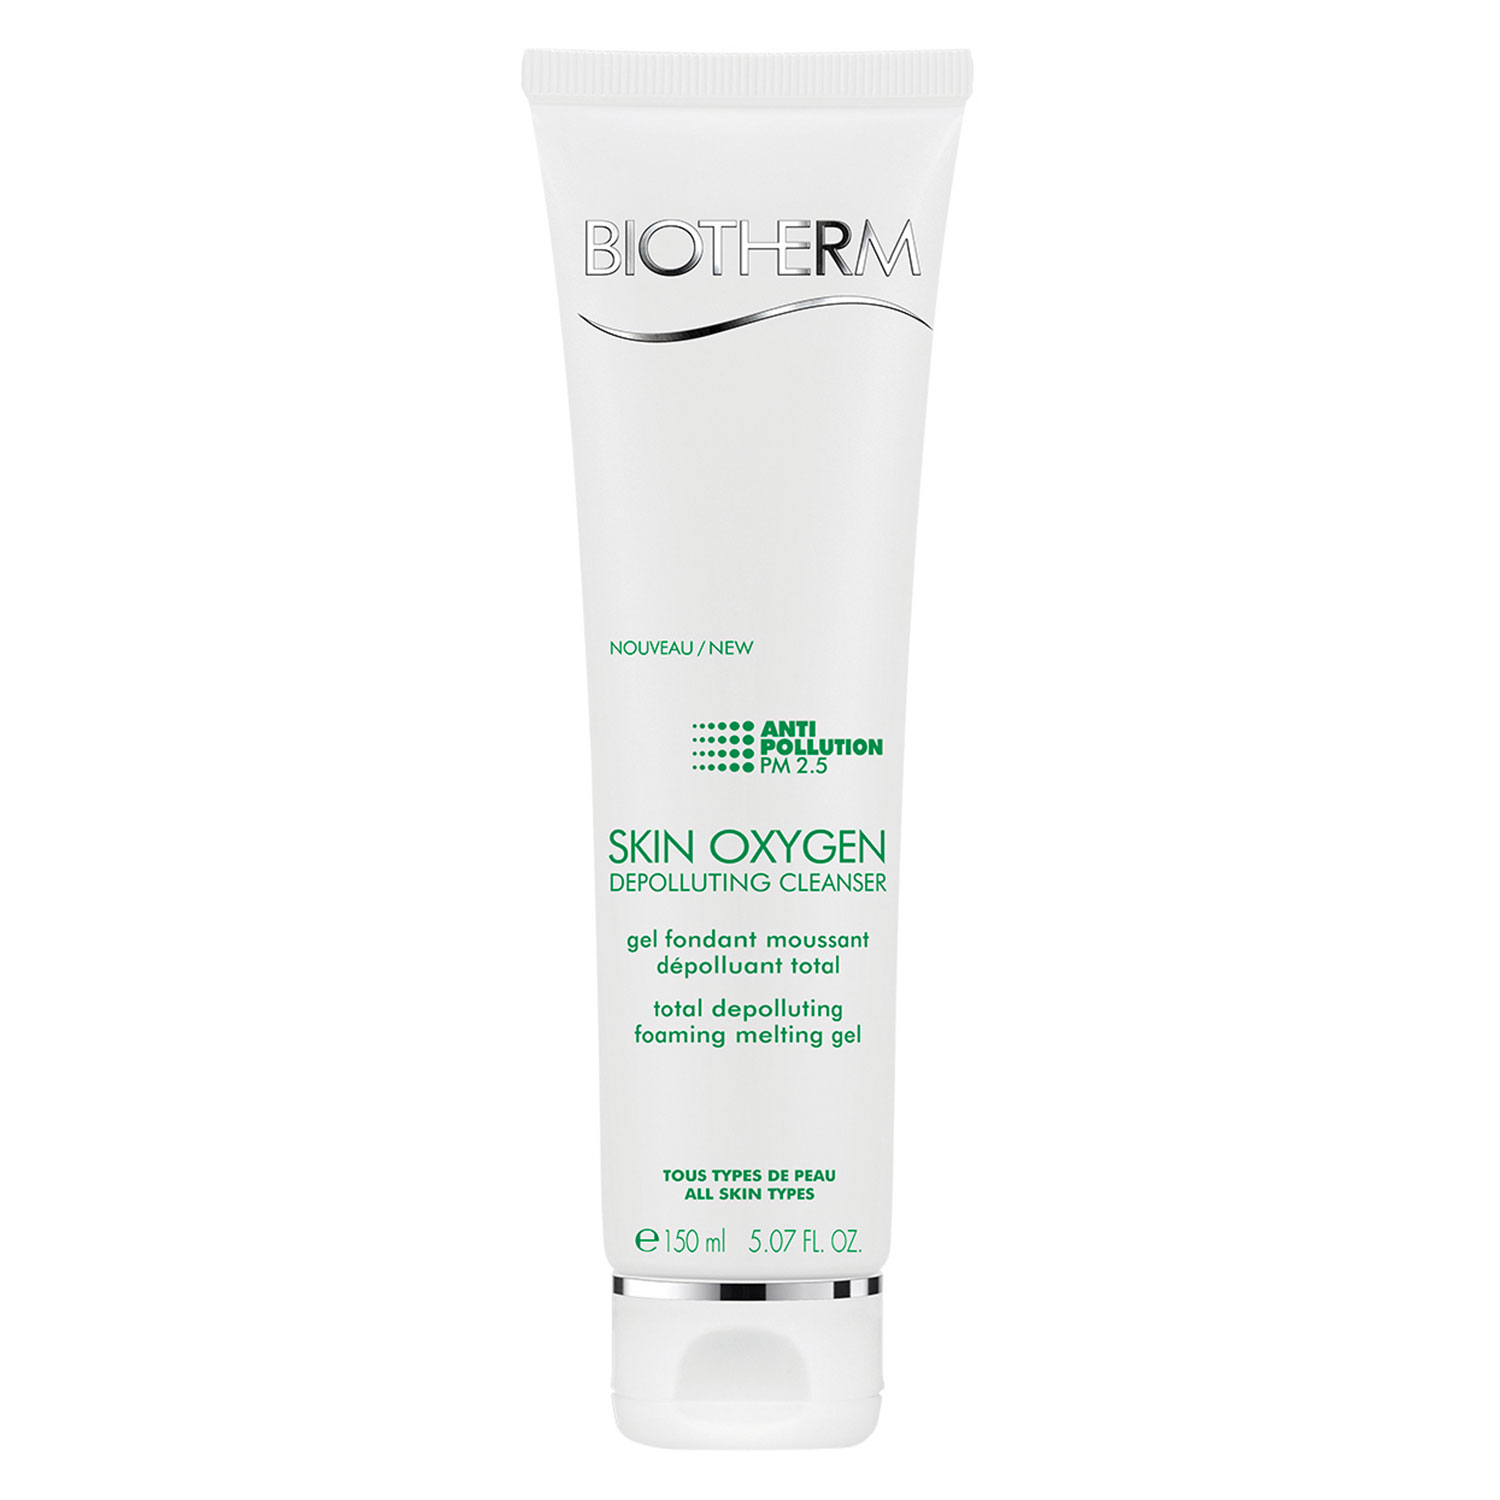 Skin Oxygen - Depolluting Cleanser - 150ml